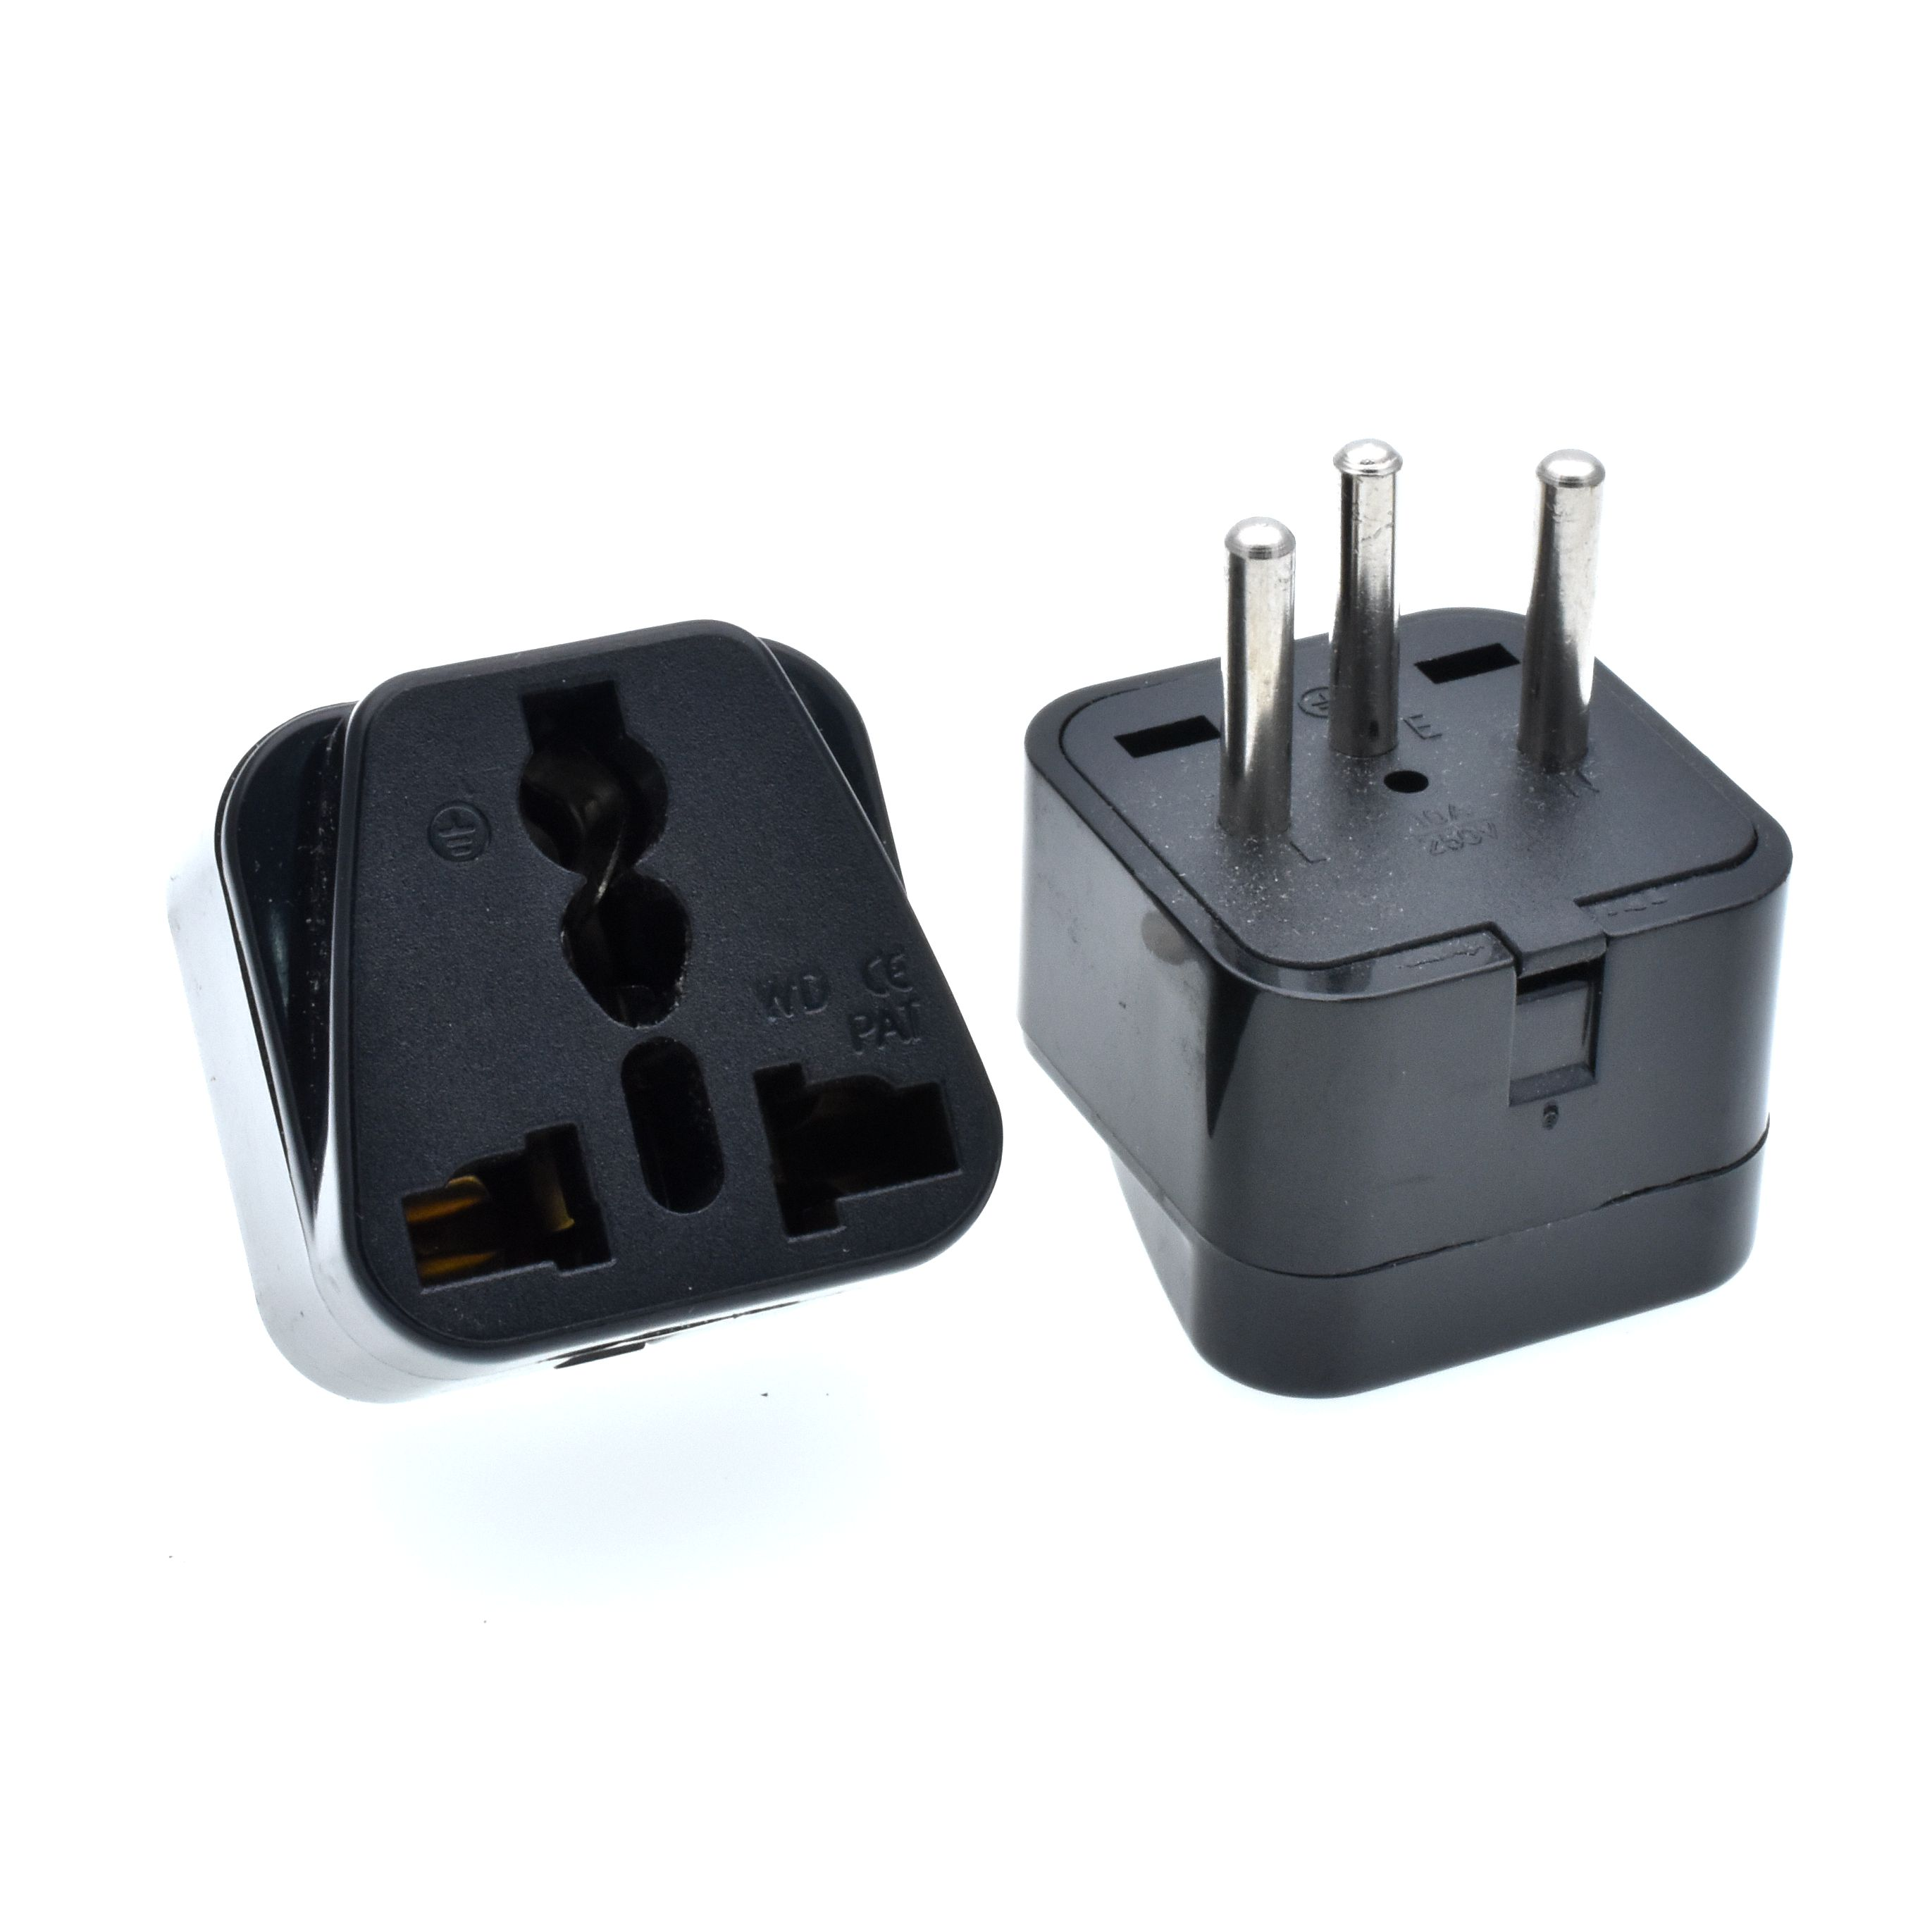 Universal Israel IL Plug Adapter EU European US UK To IL Israel Egypt Travel Adapter Electric Plug Power Charger Socket Outlet swiss power outlet